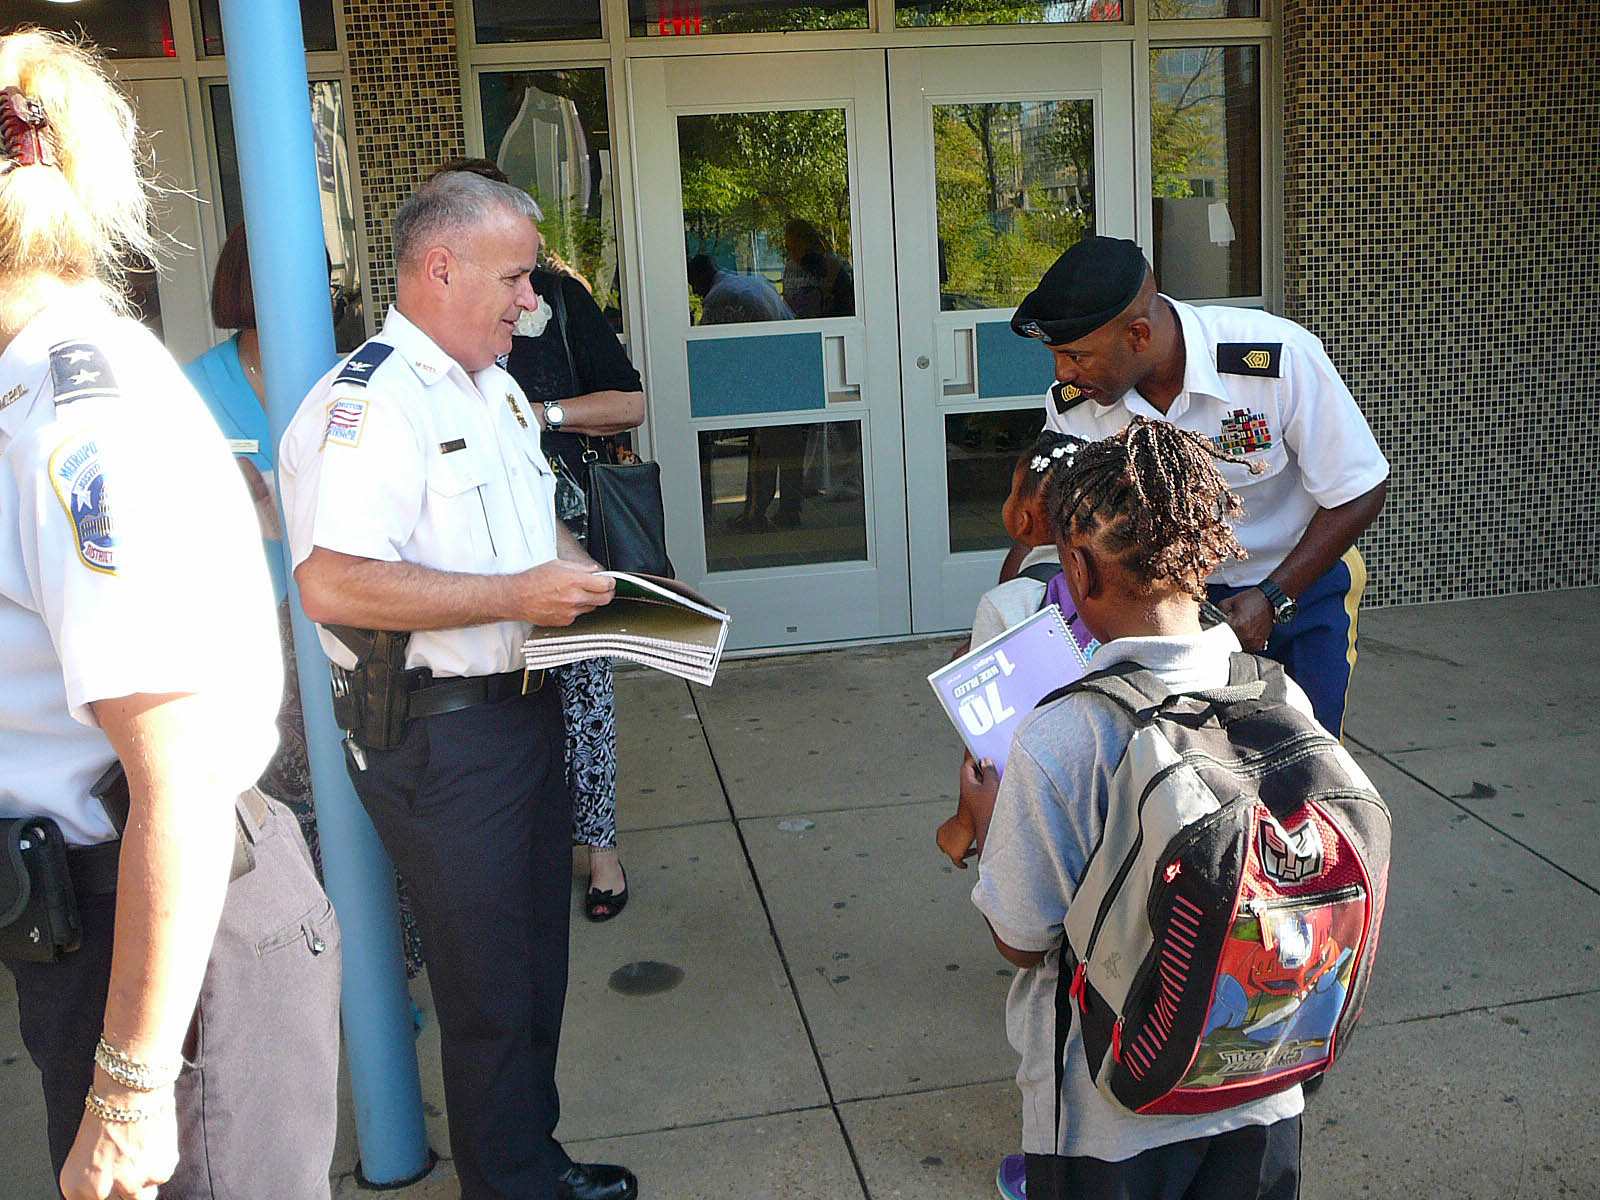 Commander Hickson and Command Sergeant Major Jessup welcome students on first day at Amidon-Bowen (Photo by Perry Klein)